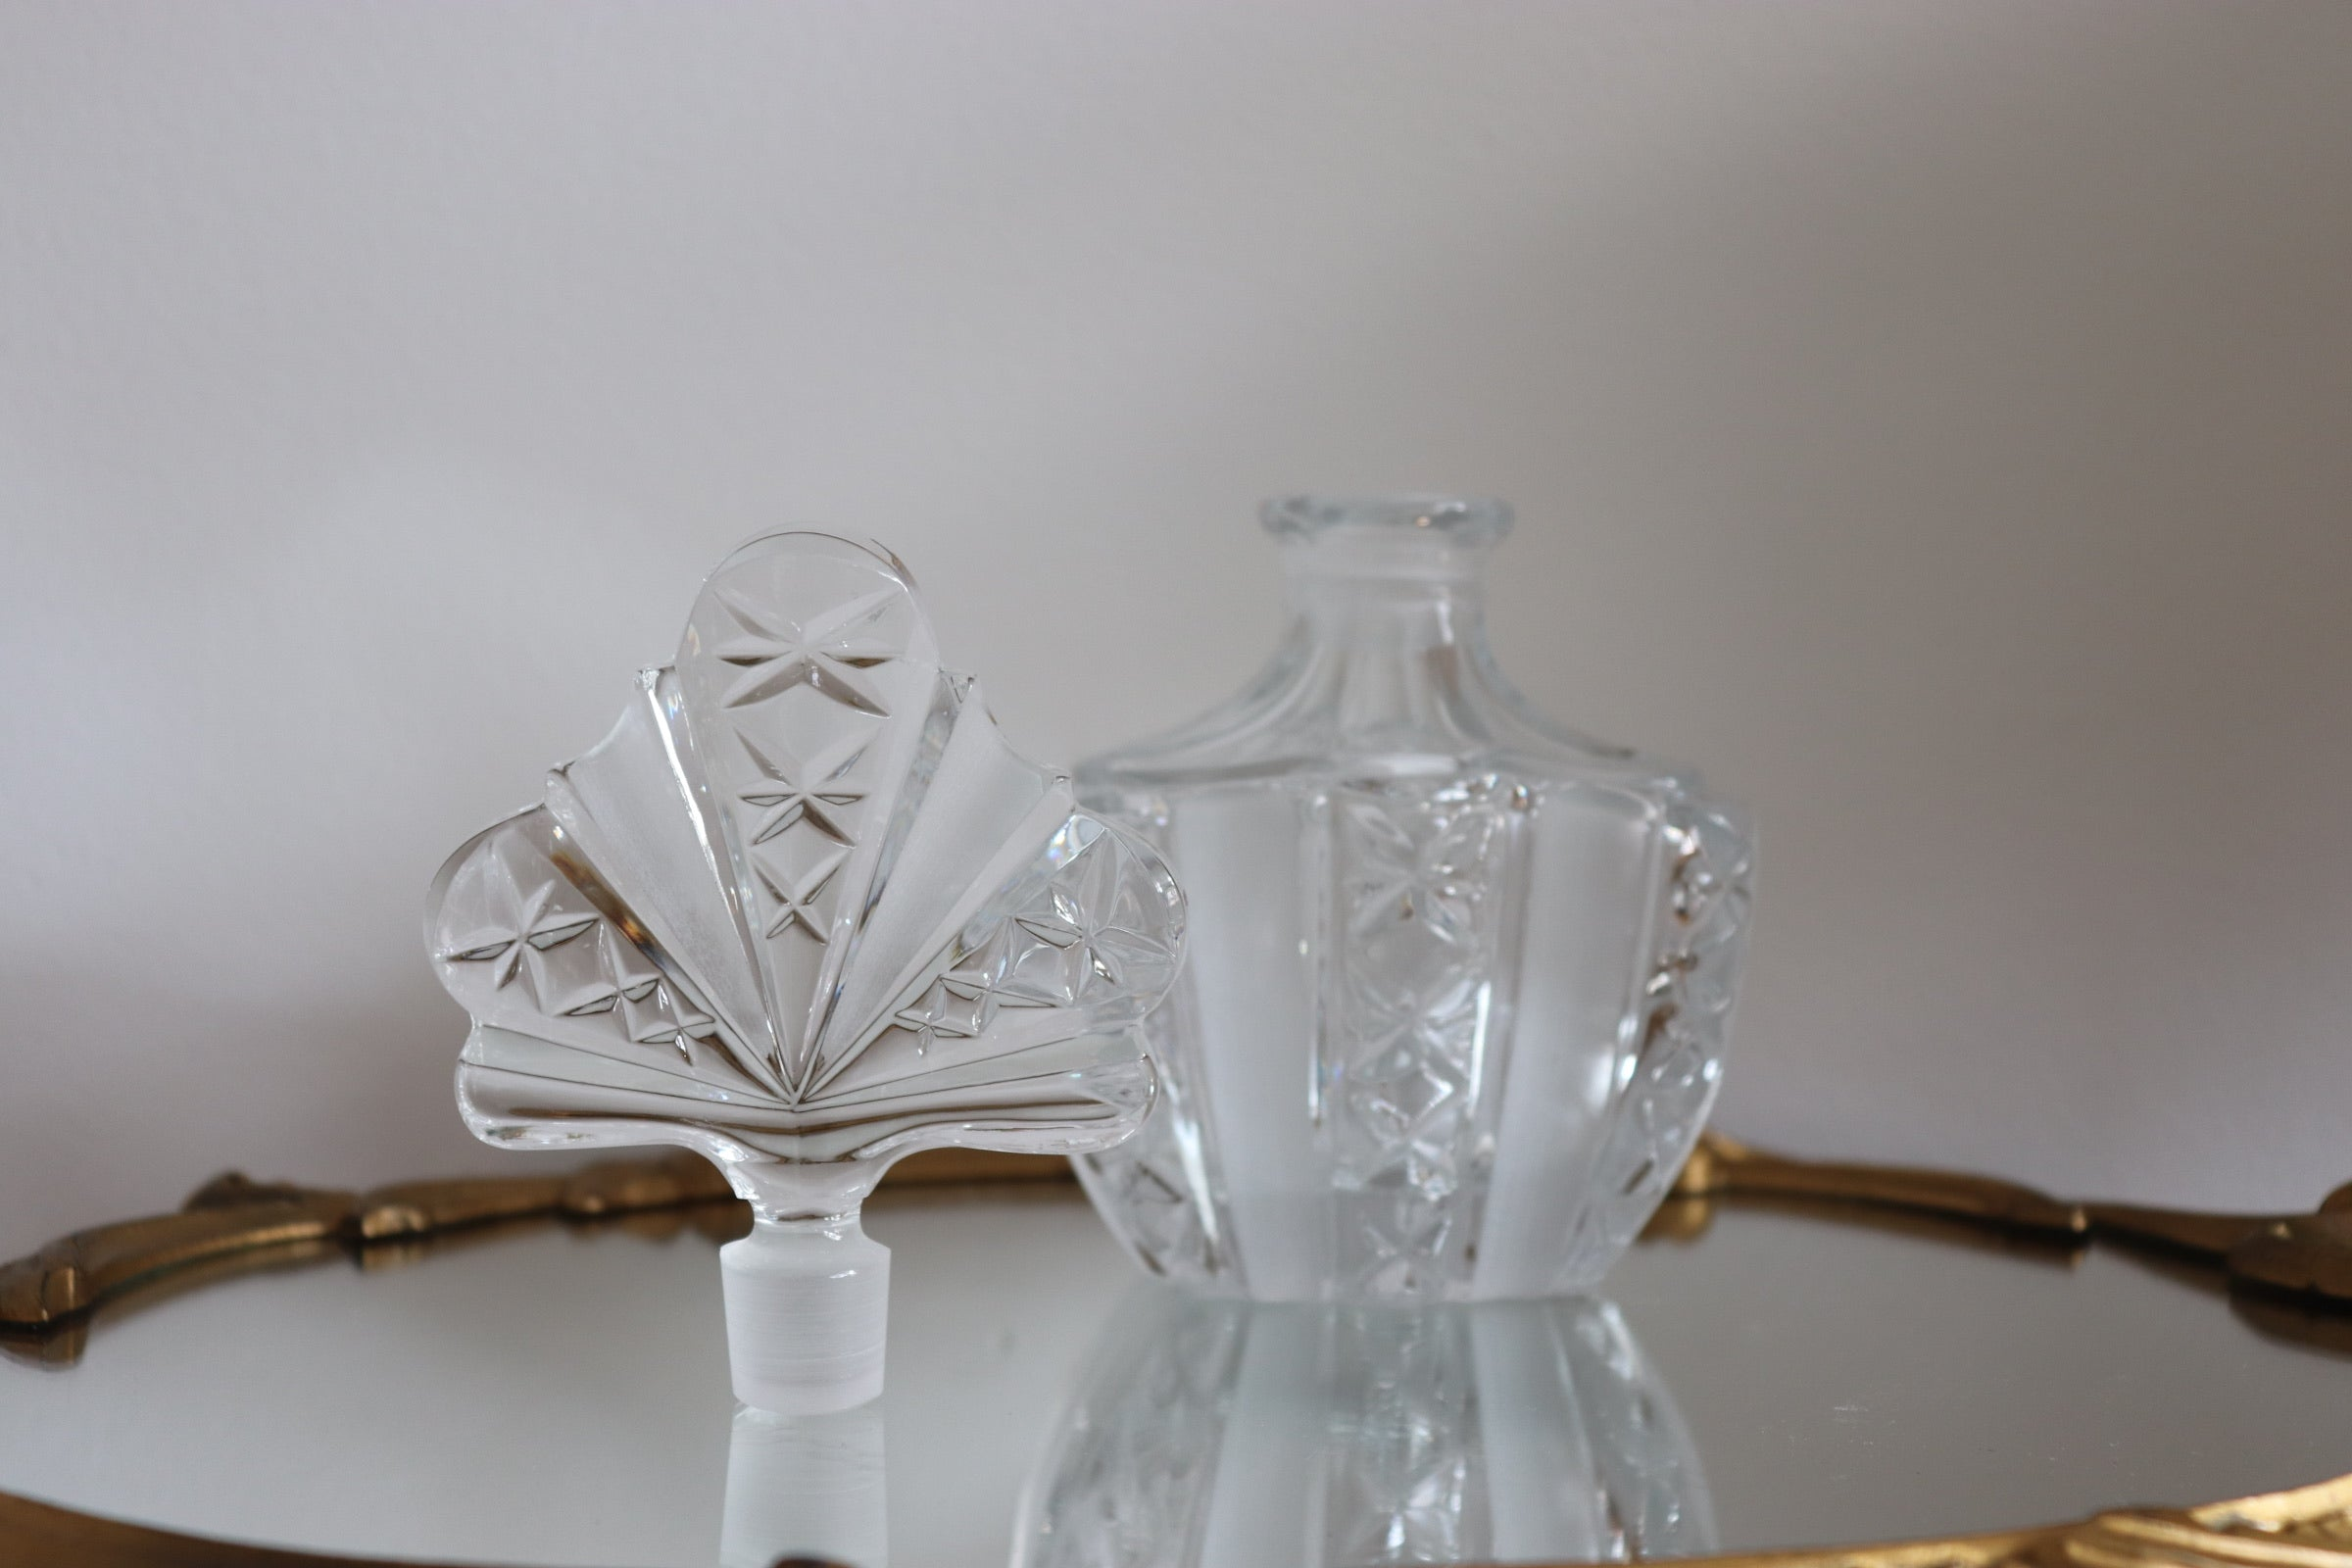 Vintage Crystal Perfume Bottle with Fan Stopper